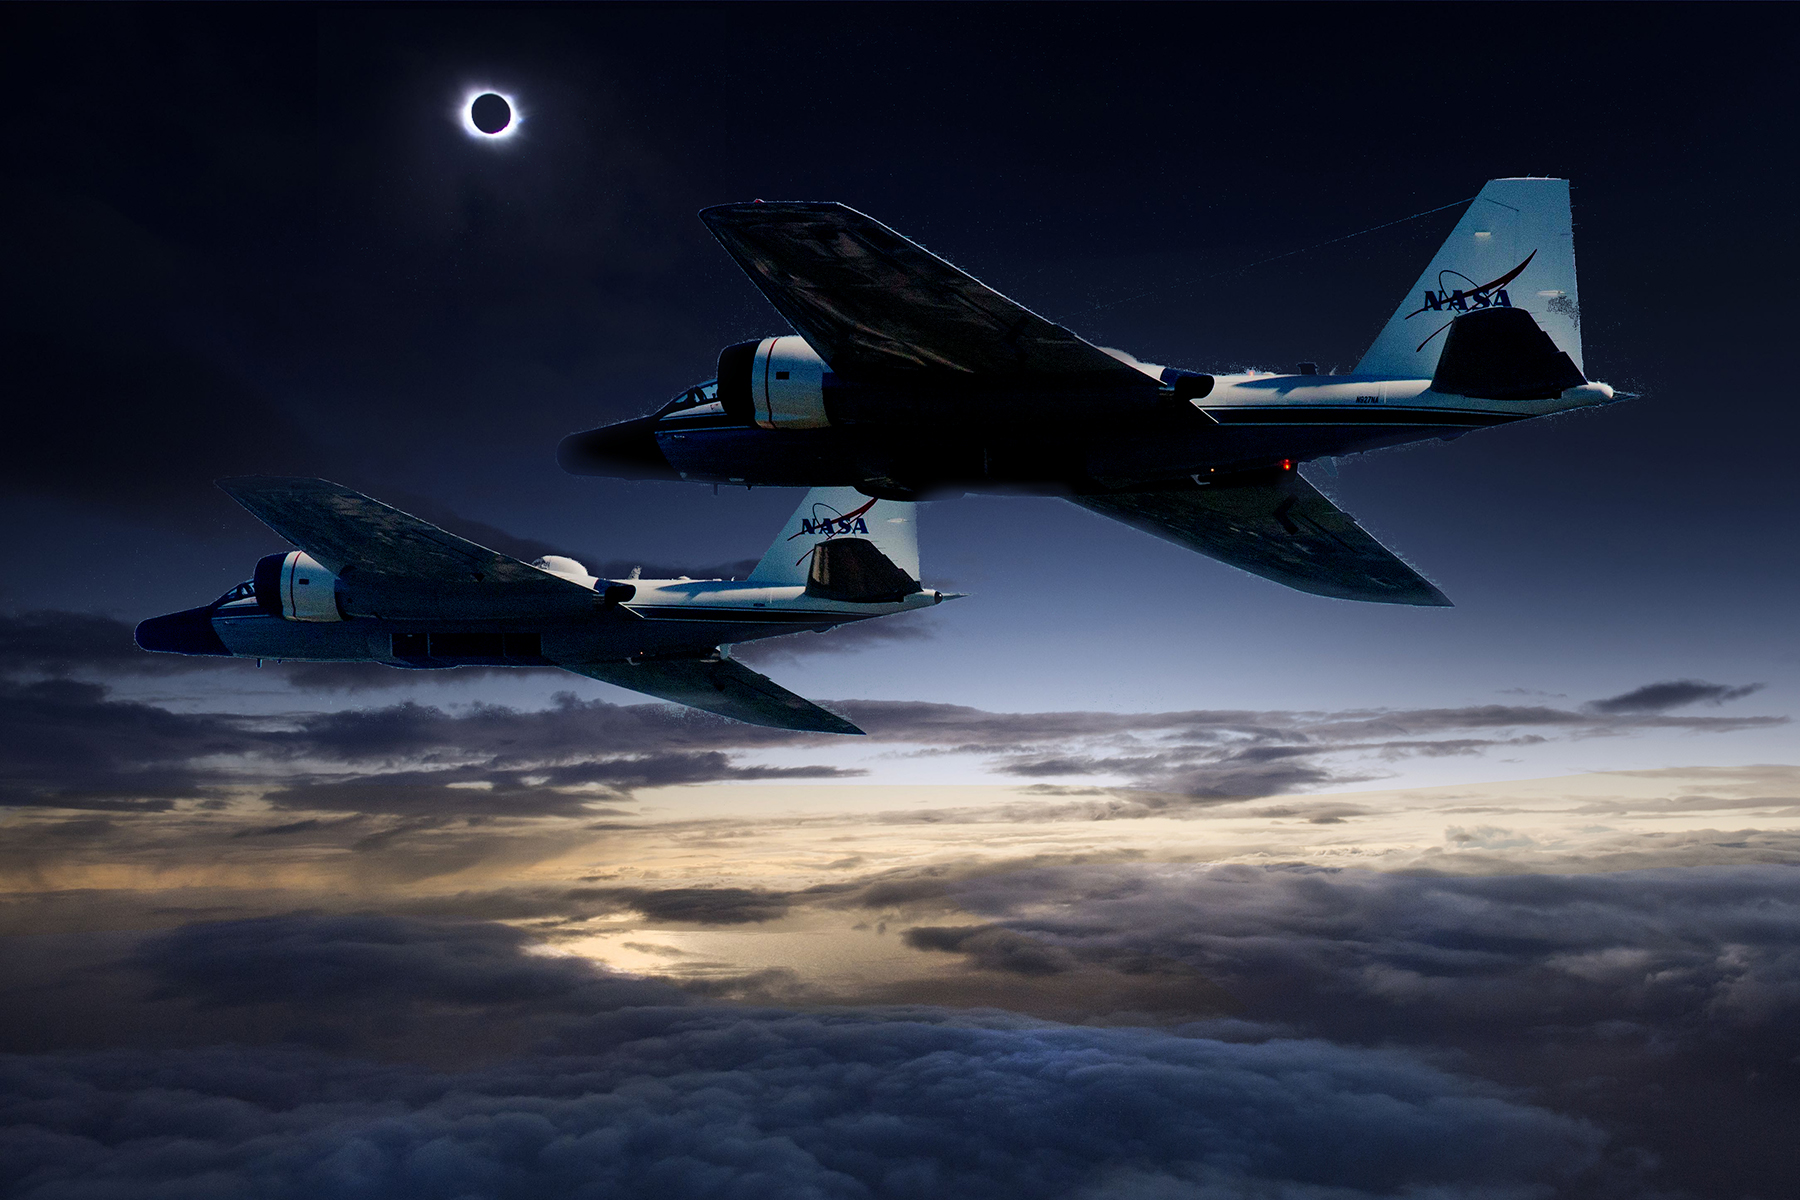 NASA Will Chase The August Eclipse In Jets To Capture Clearest - Examples future planes look according nasa